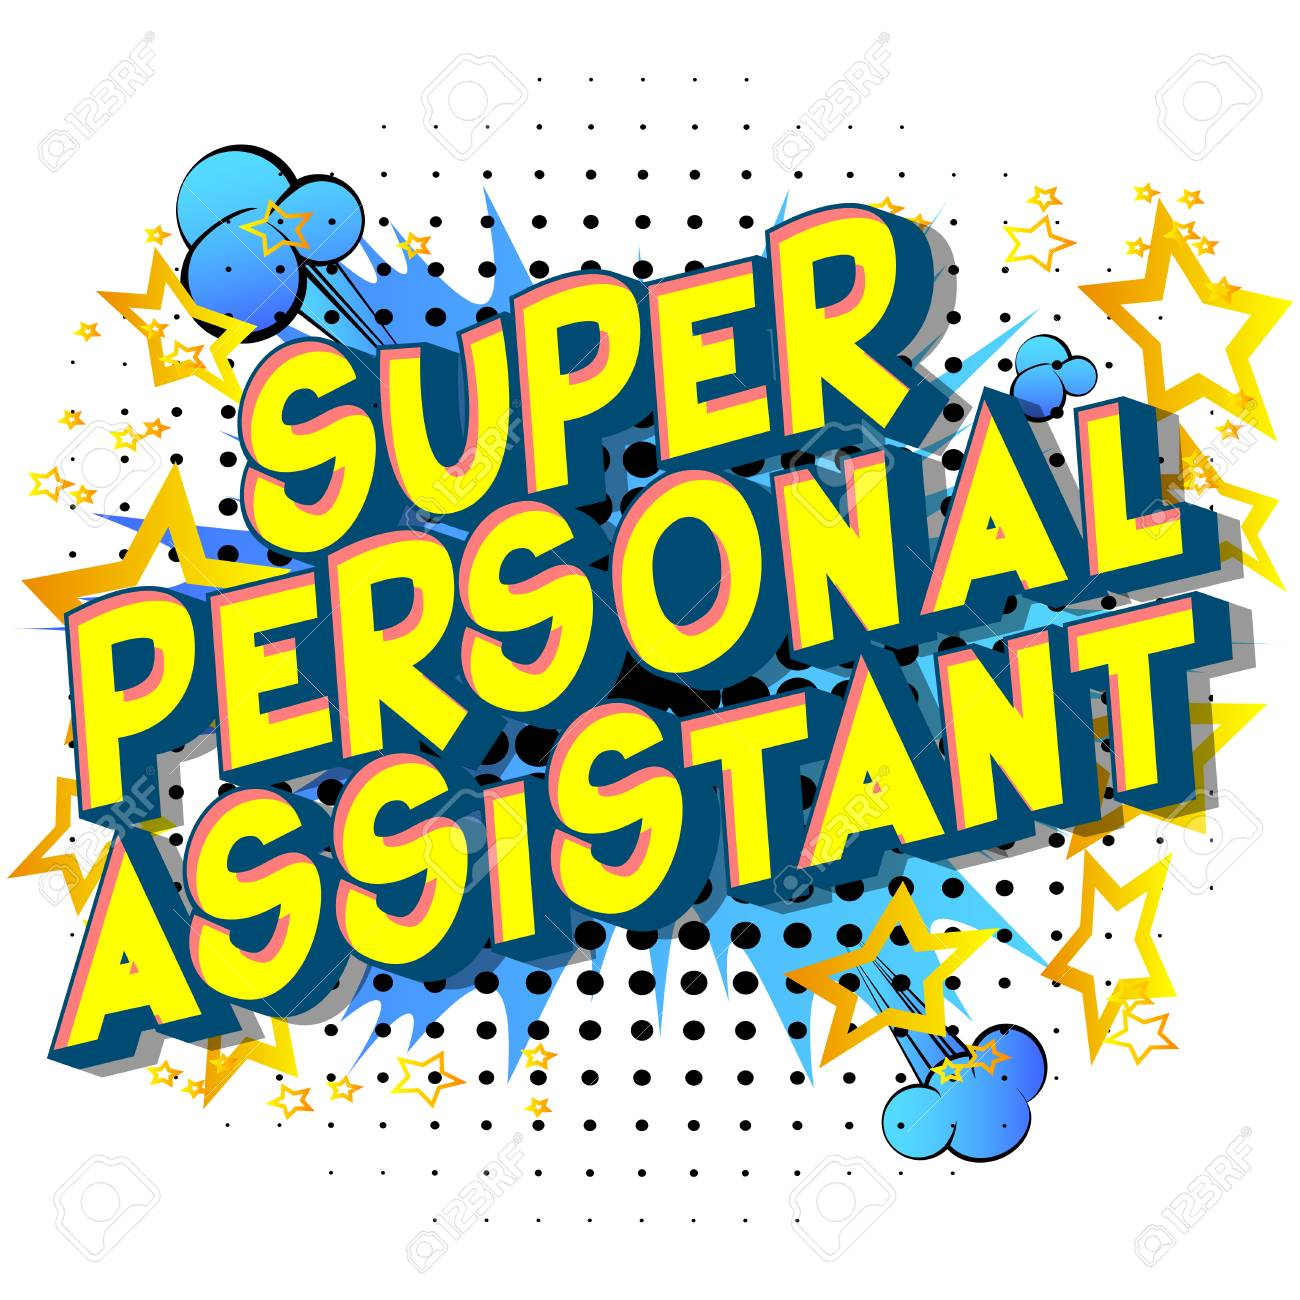 Super Personal Assistant - Vector illustrated comic book style